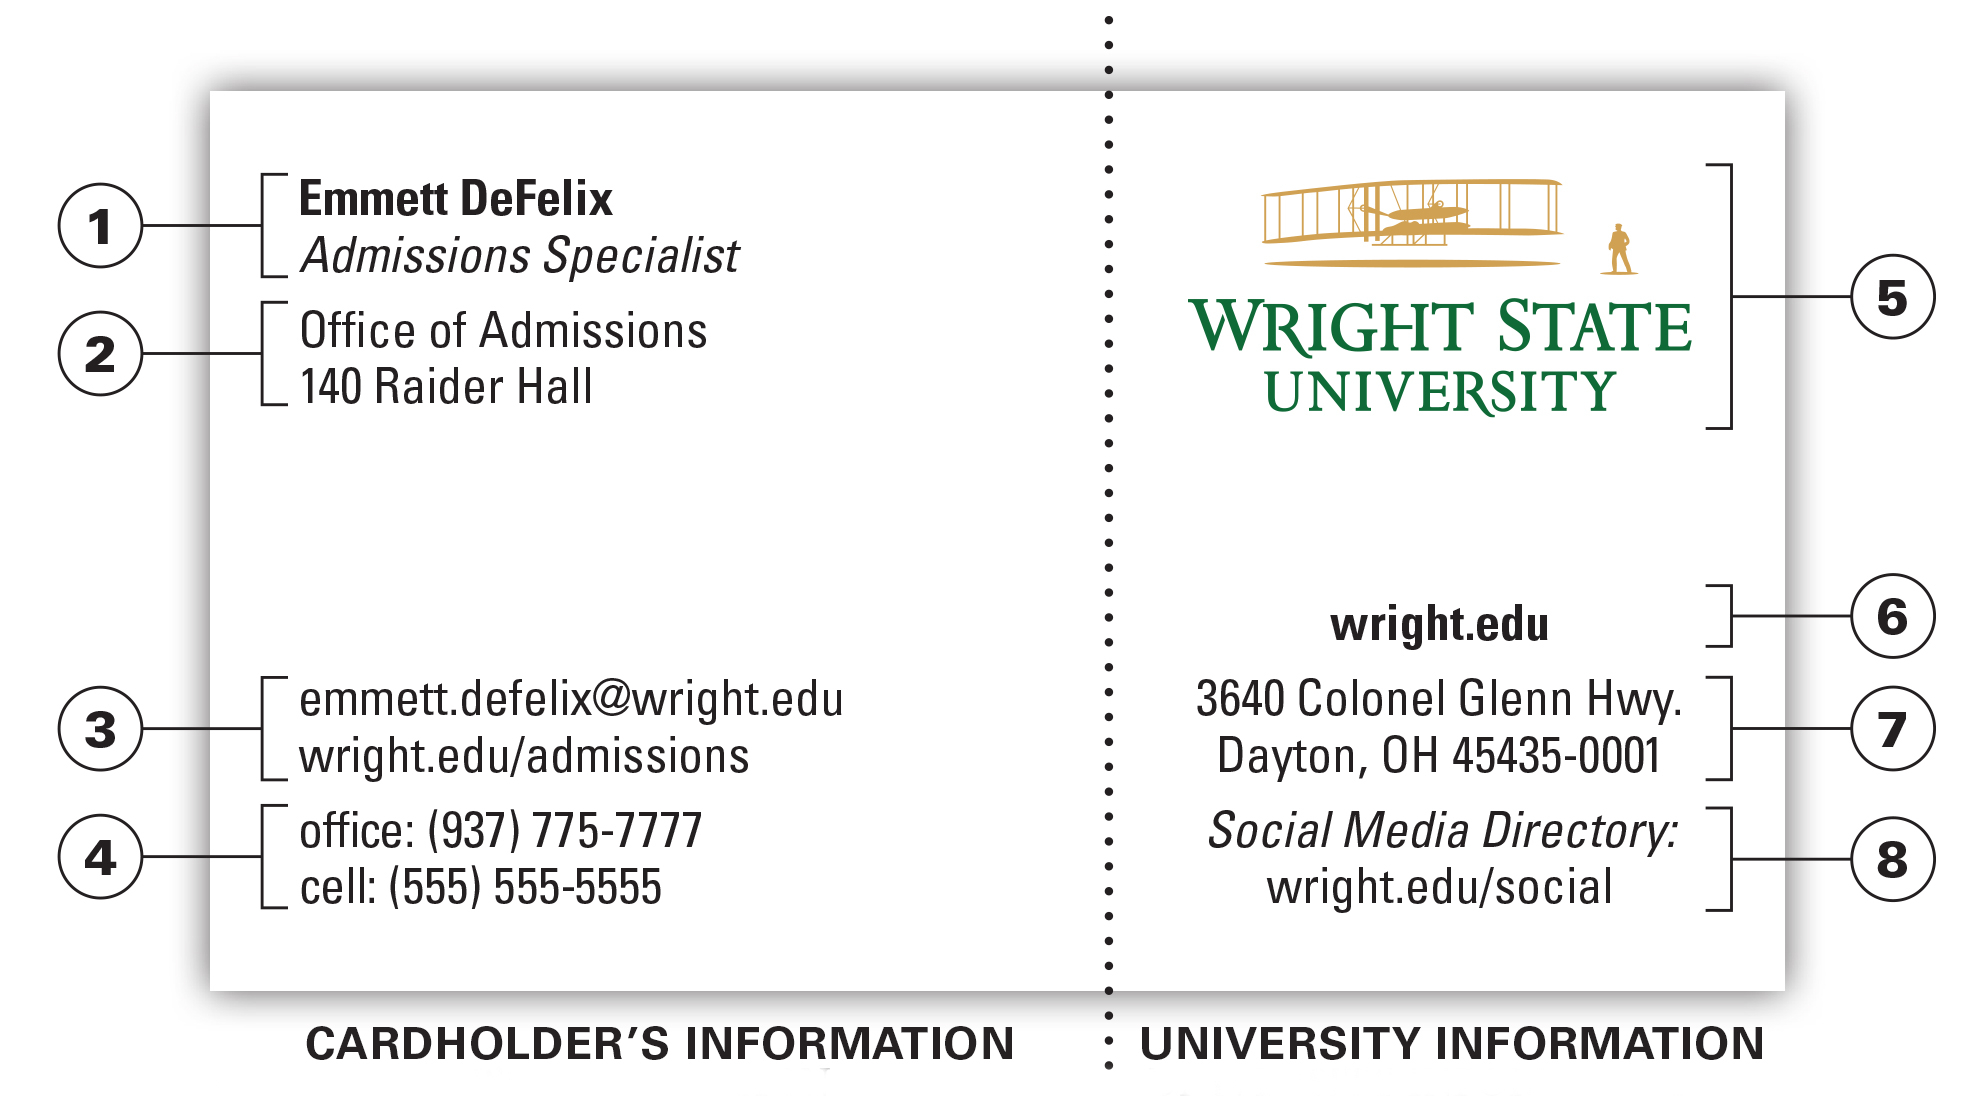 University Business Card | The Wright State University Brand Intended For University Of Dayton Class Schedule Blank Template